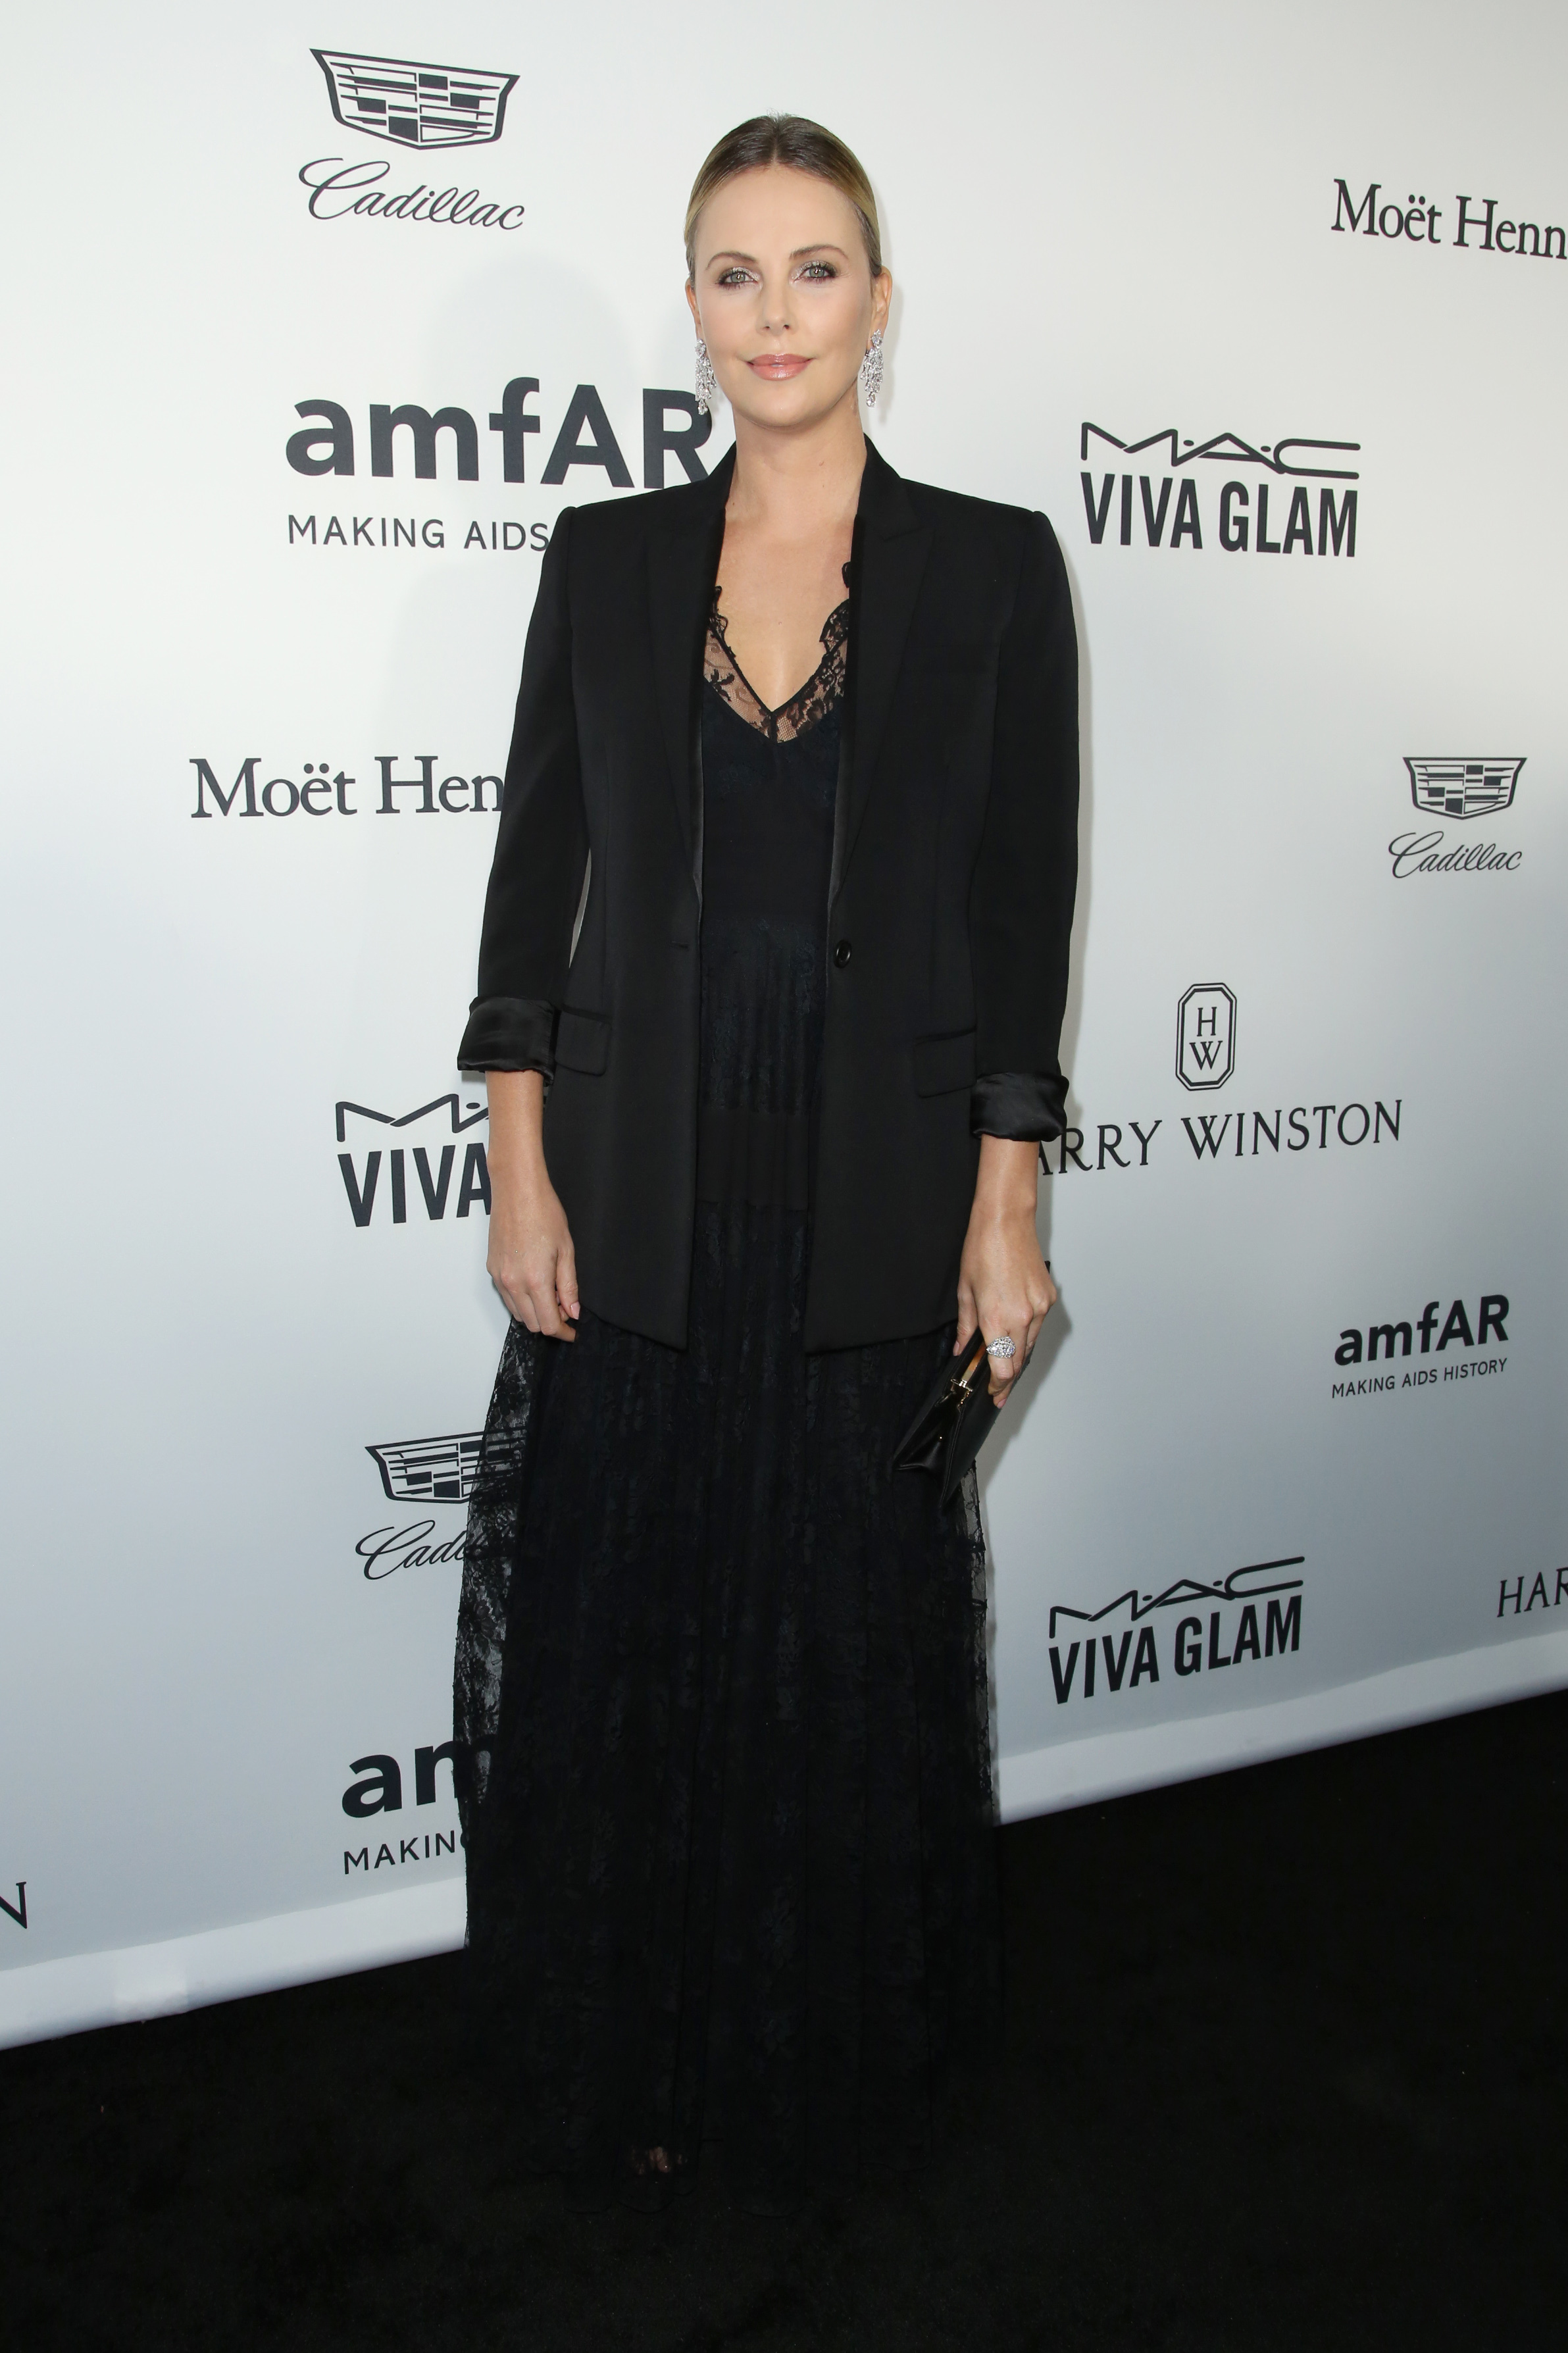 Charlize Theron jokes about her weight at amfAR Inspiration gala